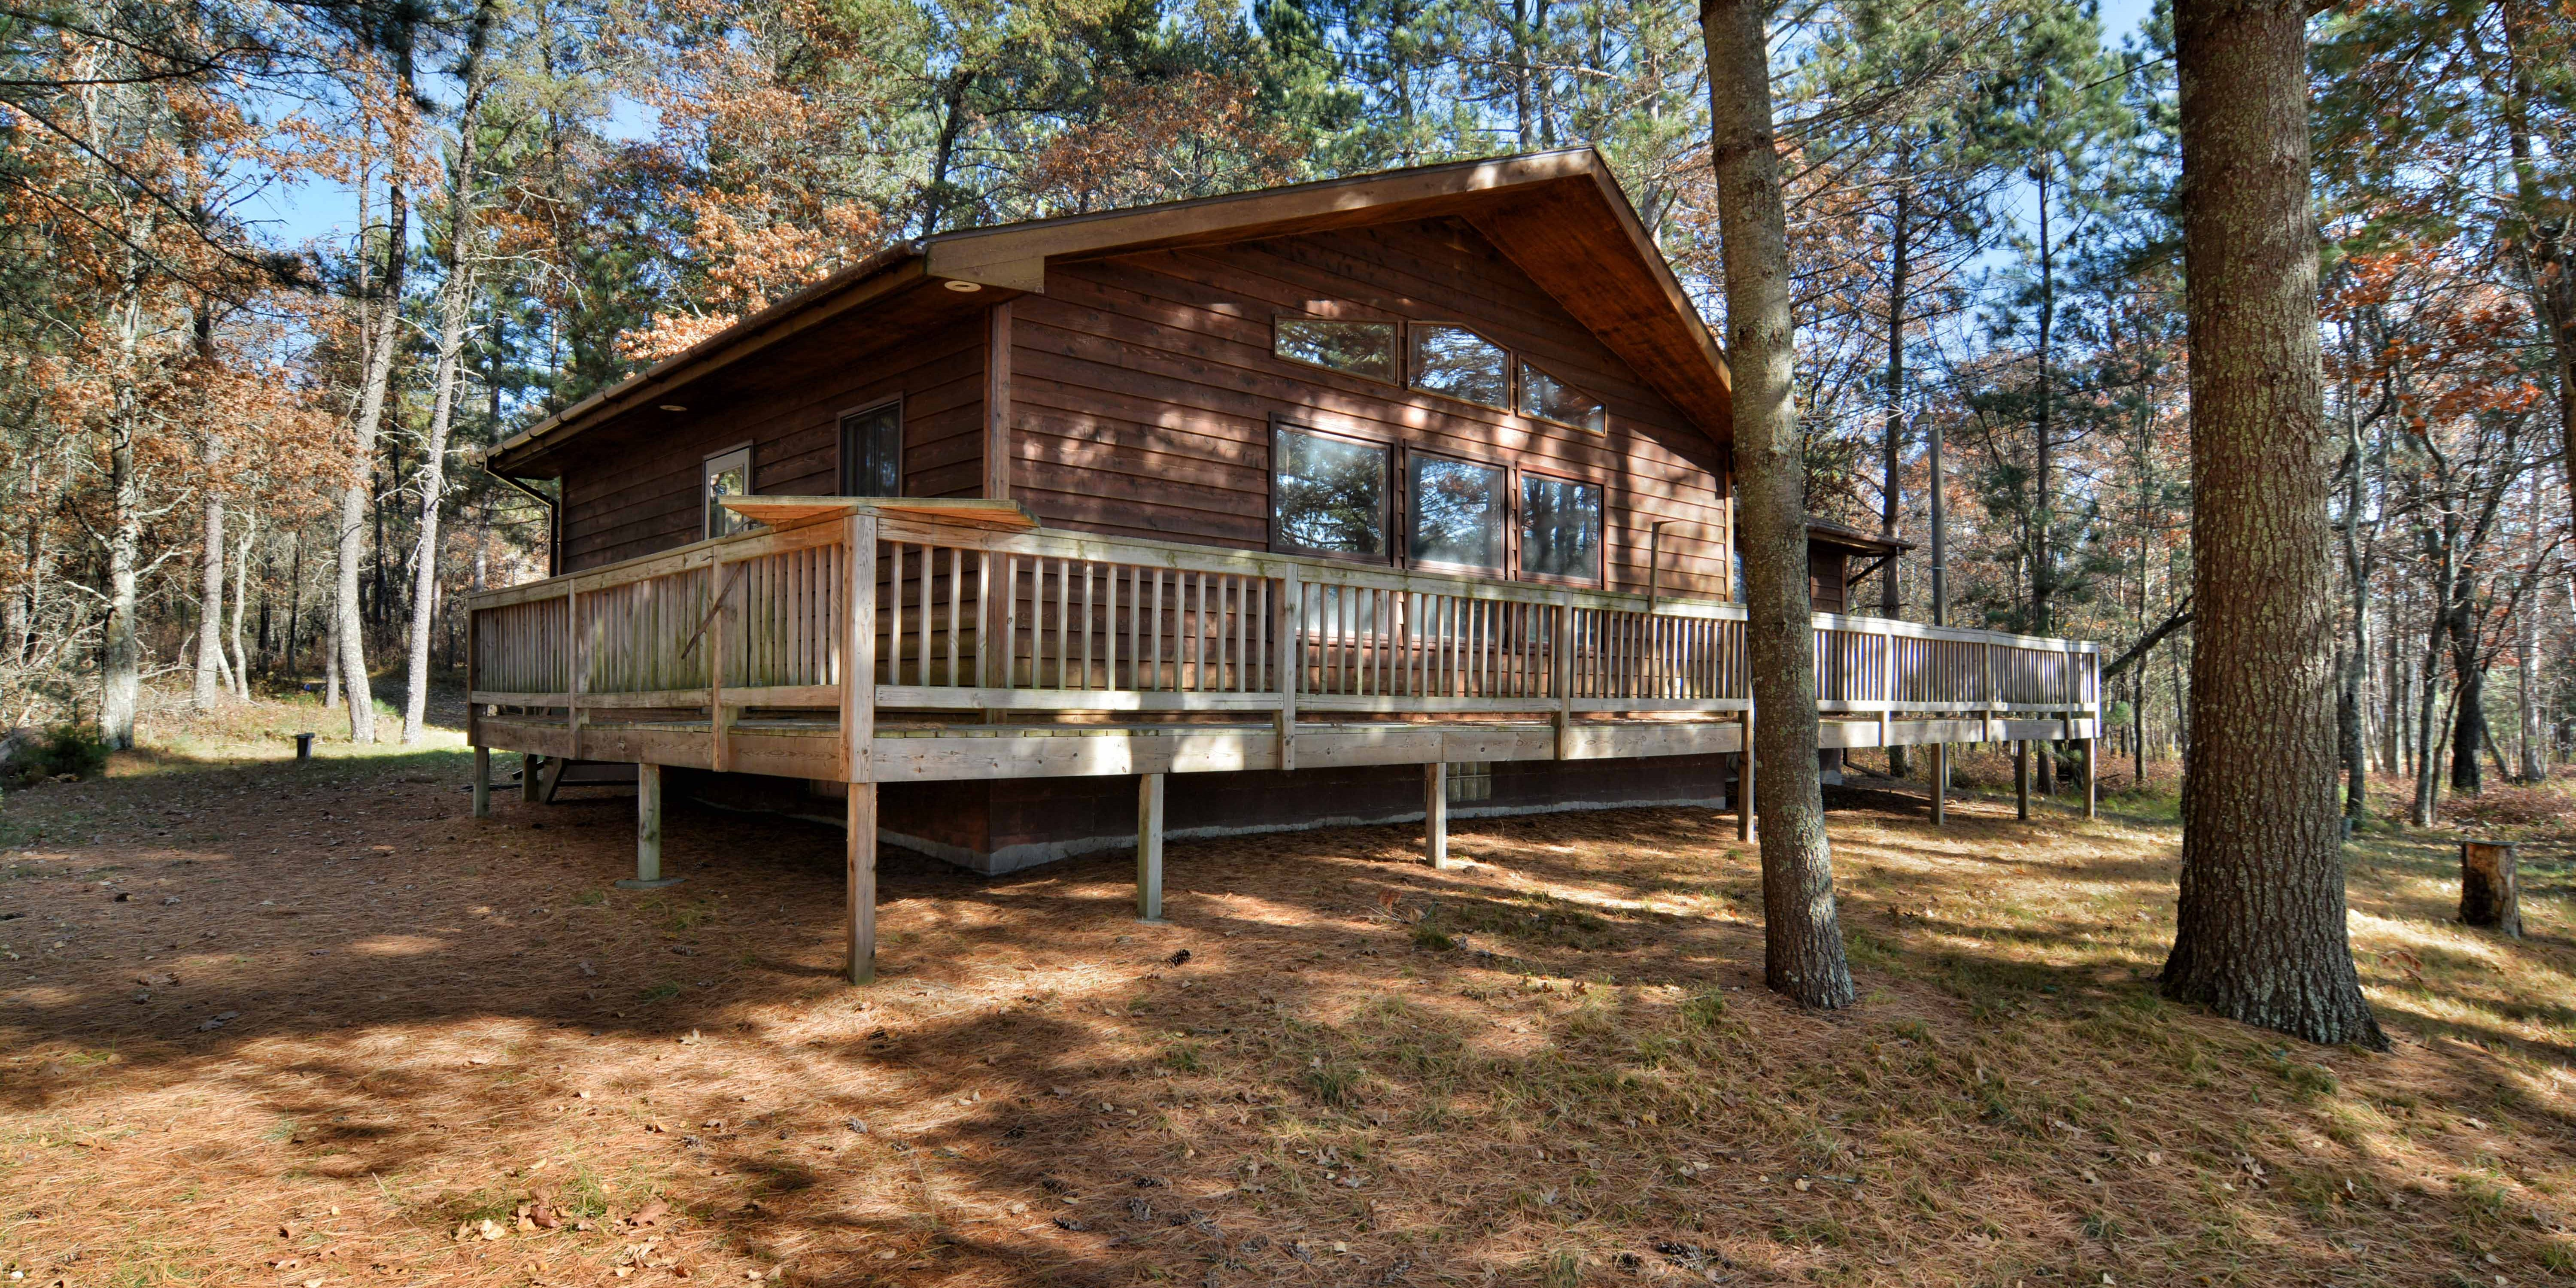 Nancy Lake Minong Wisconsin Cabin for Sale on 20 Acres